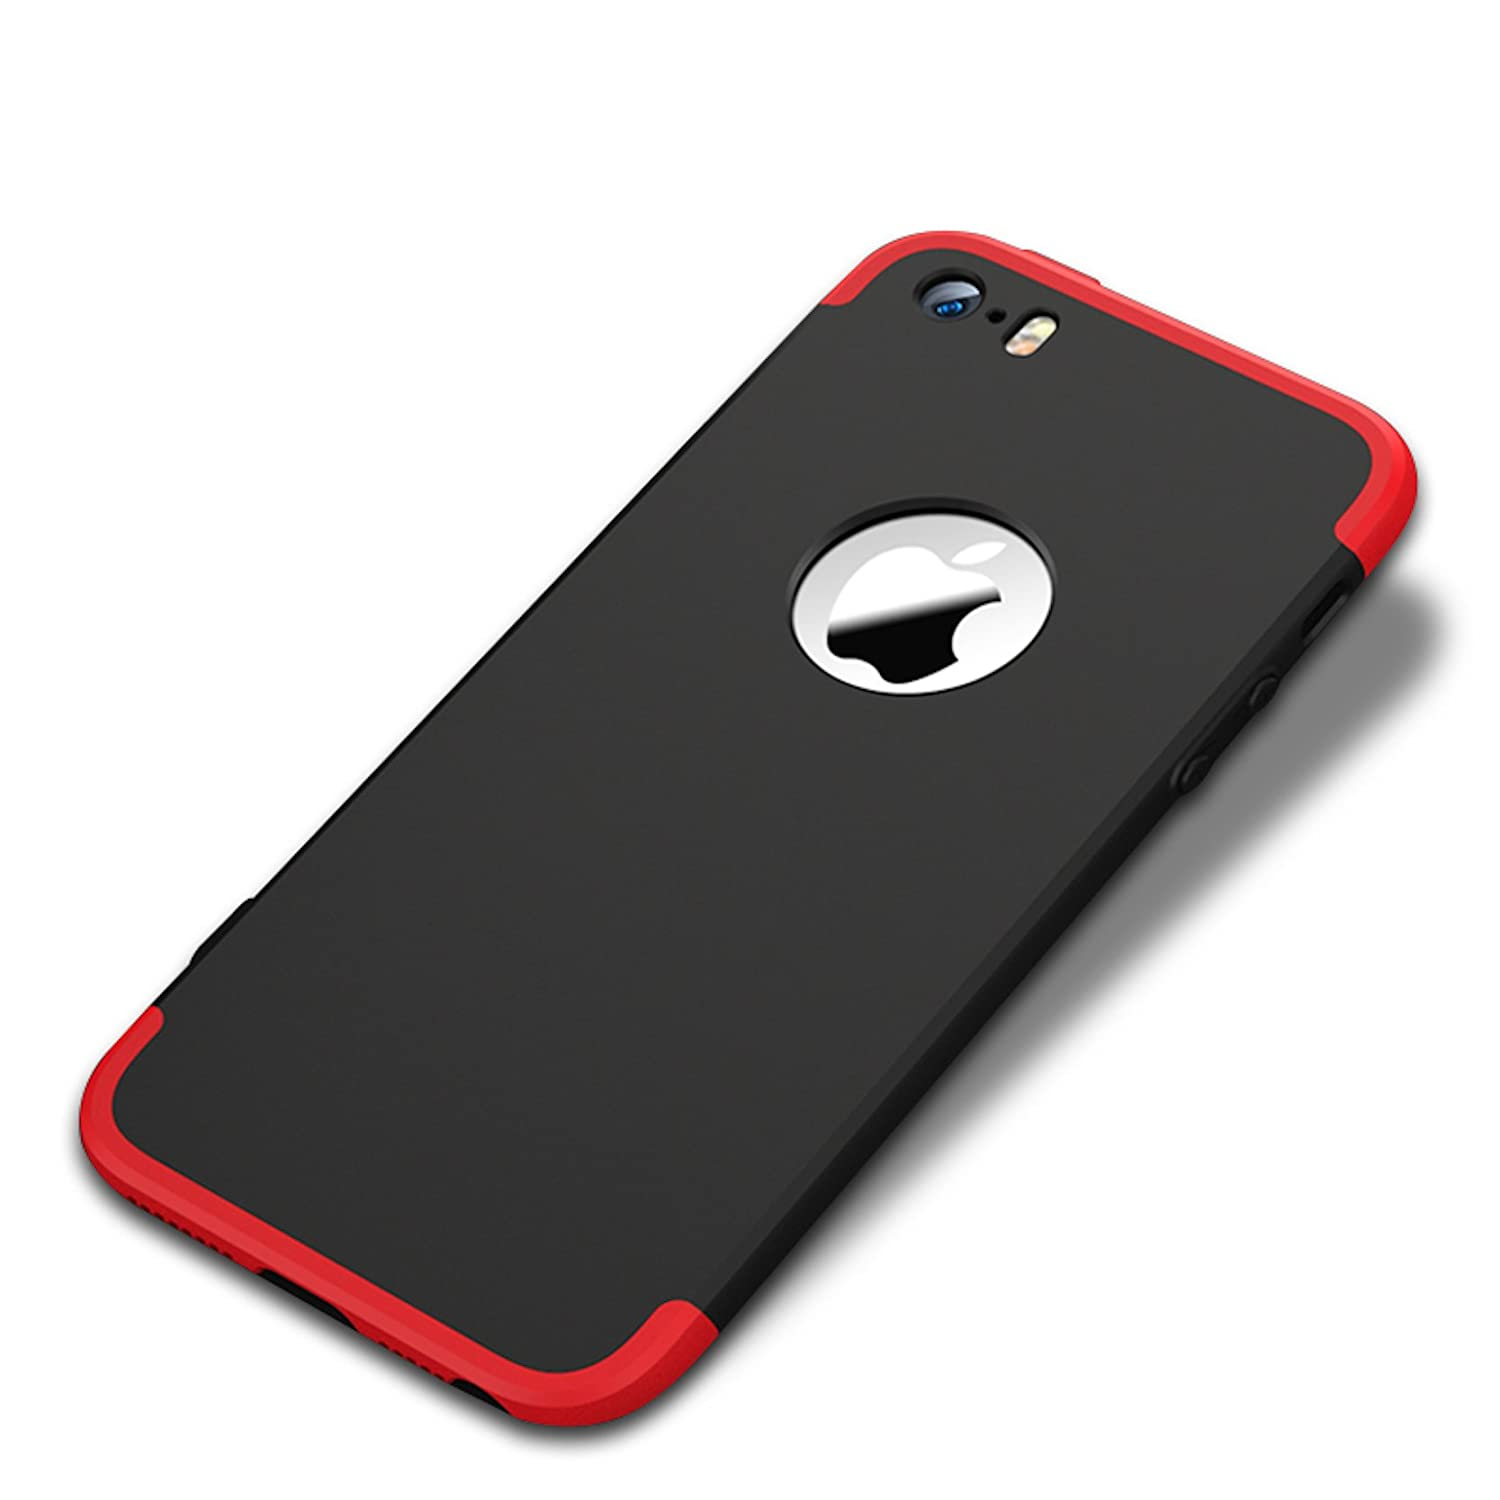 sports shoes 6e13c b2b67 Bounceback ® Apple iPhone 5 / 5s / SE Case 3in1 360º Anti Slip Super Slim  Back Cover for Apple iPhone 5 / 5s / SE (Black&Red)